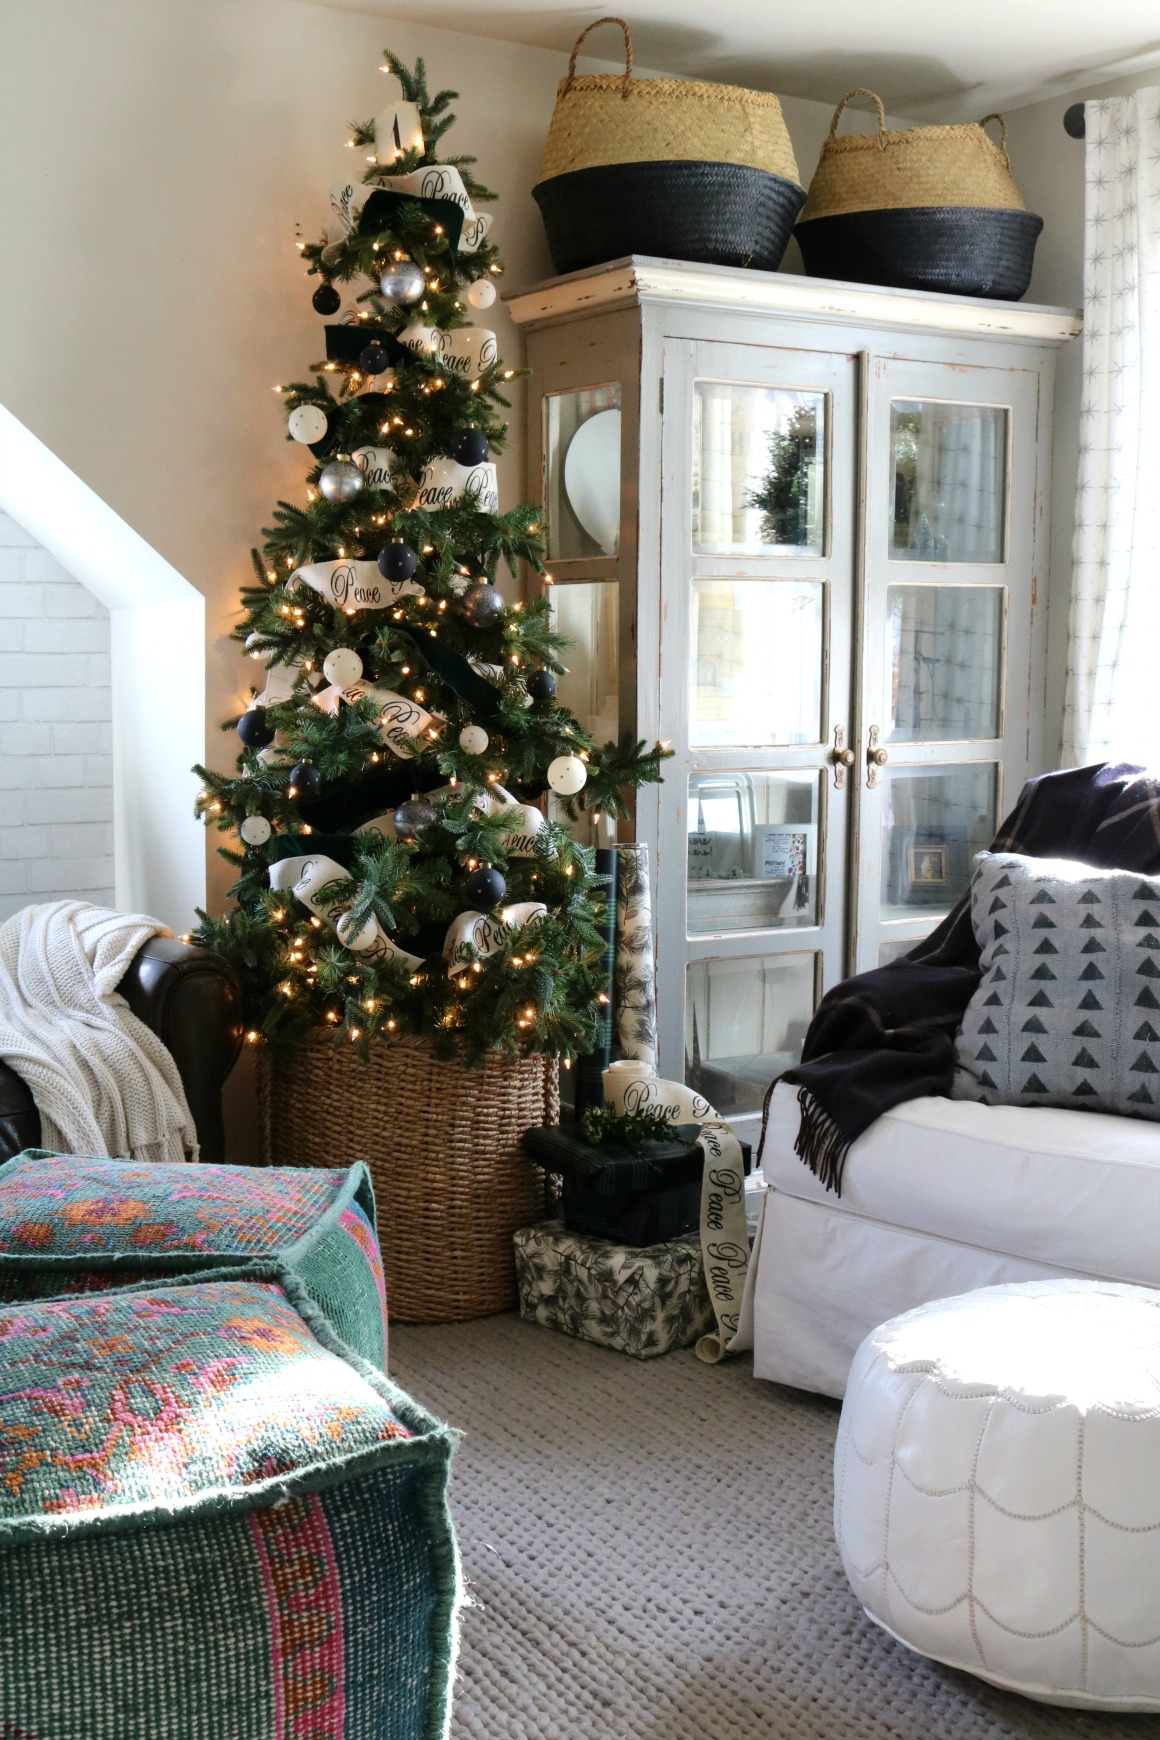 Christmas ideas in a small space upstairs tour nesting - Small room decor ideas ...